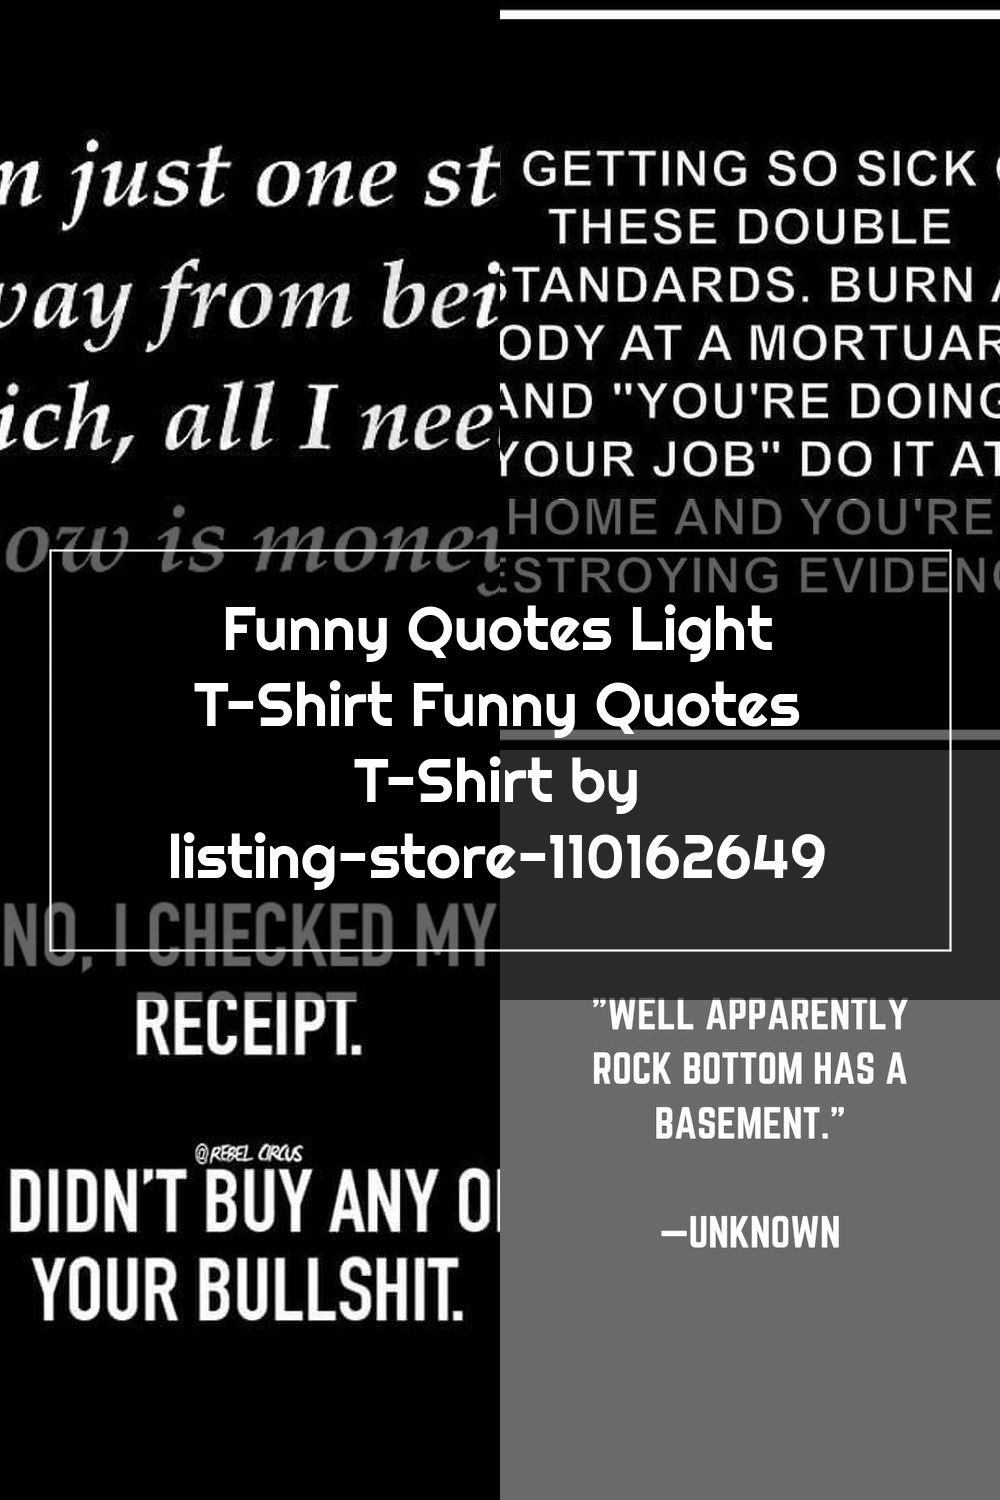 Funny Quotes Light T Shirt Funny Quotes T Shirt By Listing Store 110162649 Funny Quotes Quotes Funny